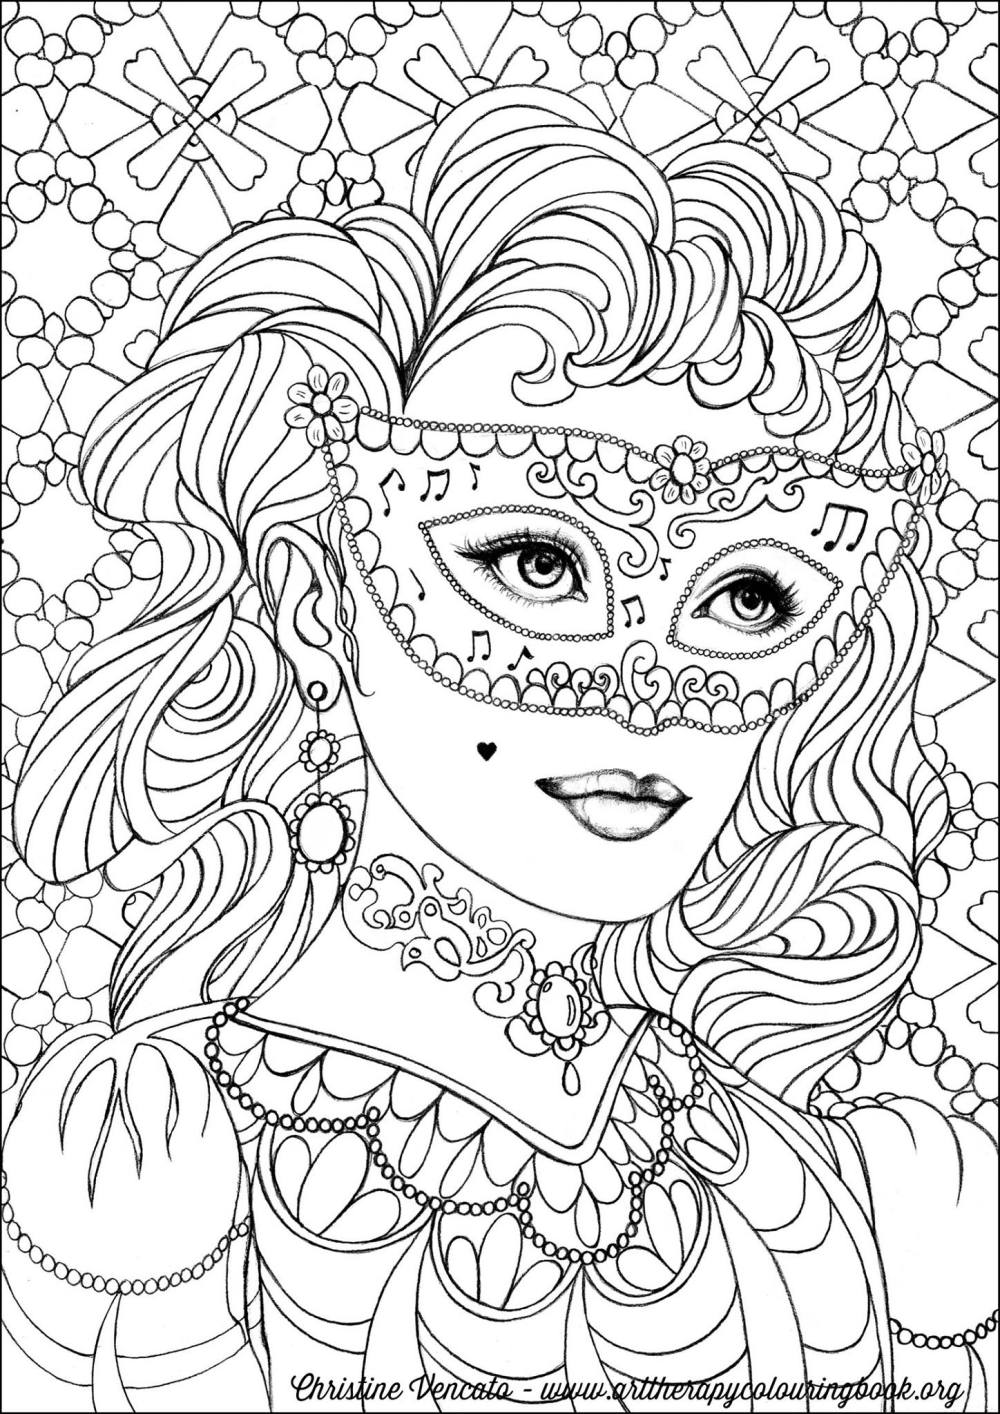 Free Coloring Page From Adult Coloring Worldwide. Art by Christine Vencato